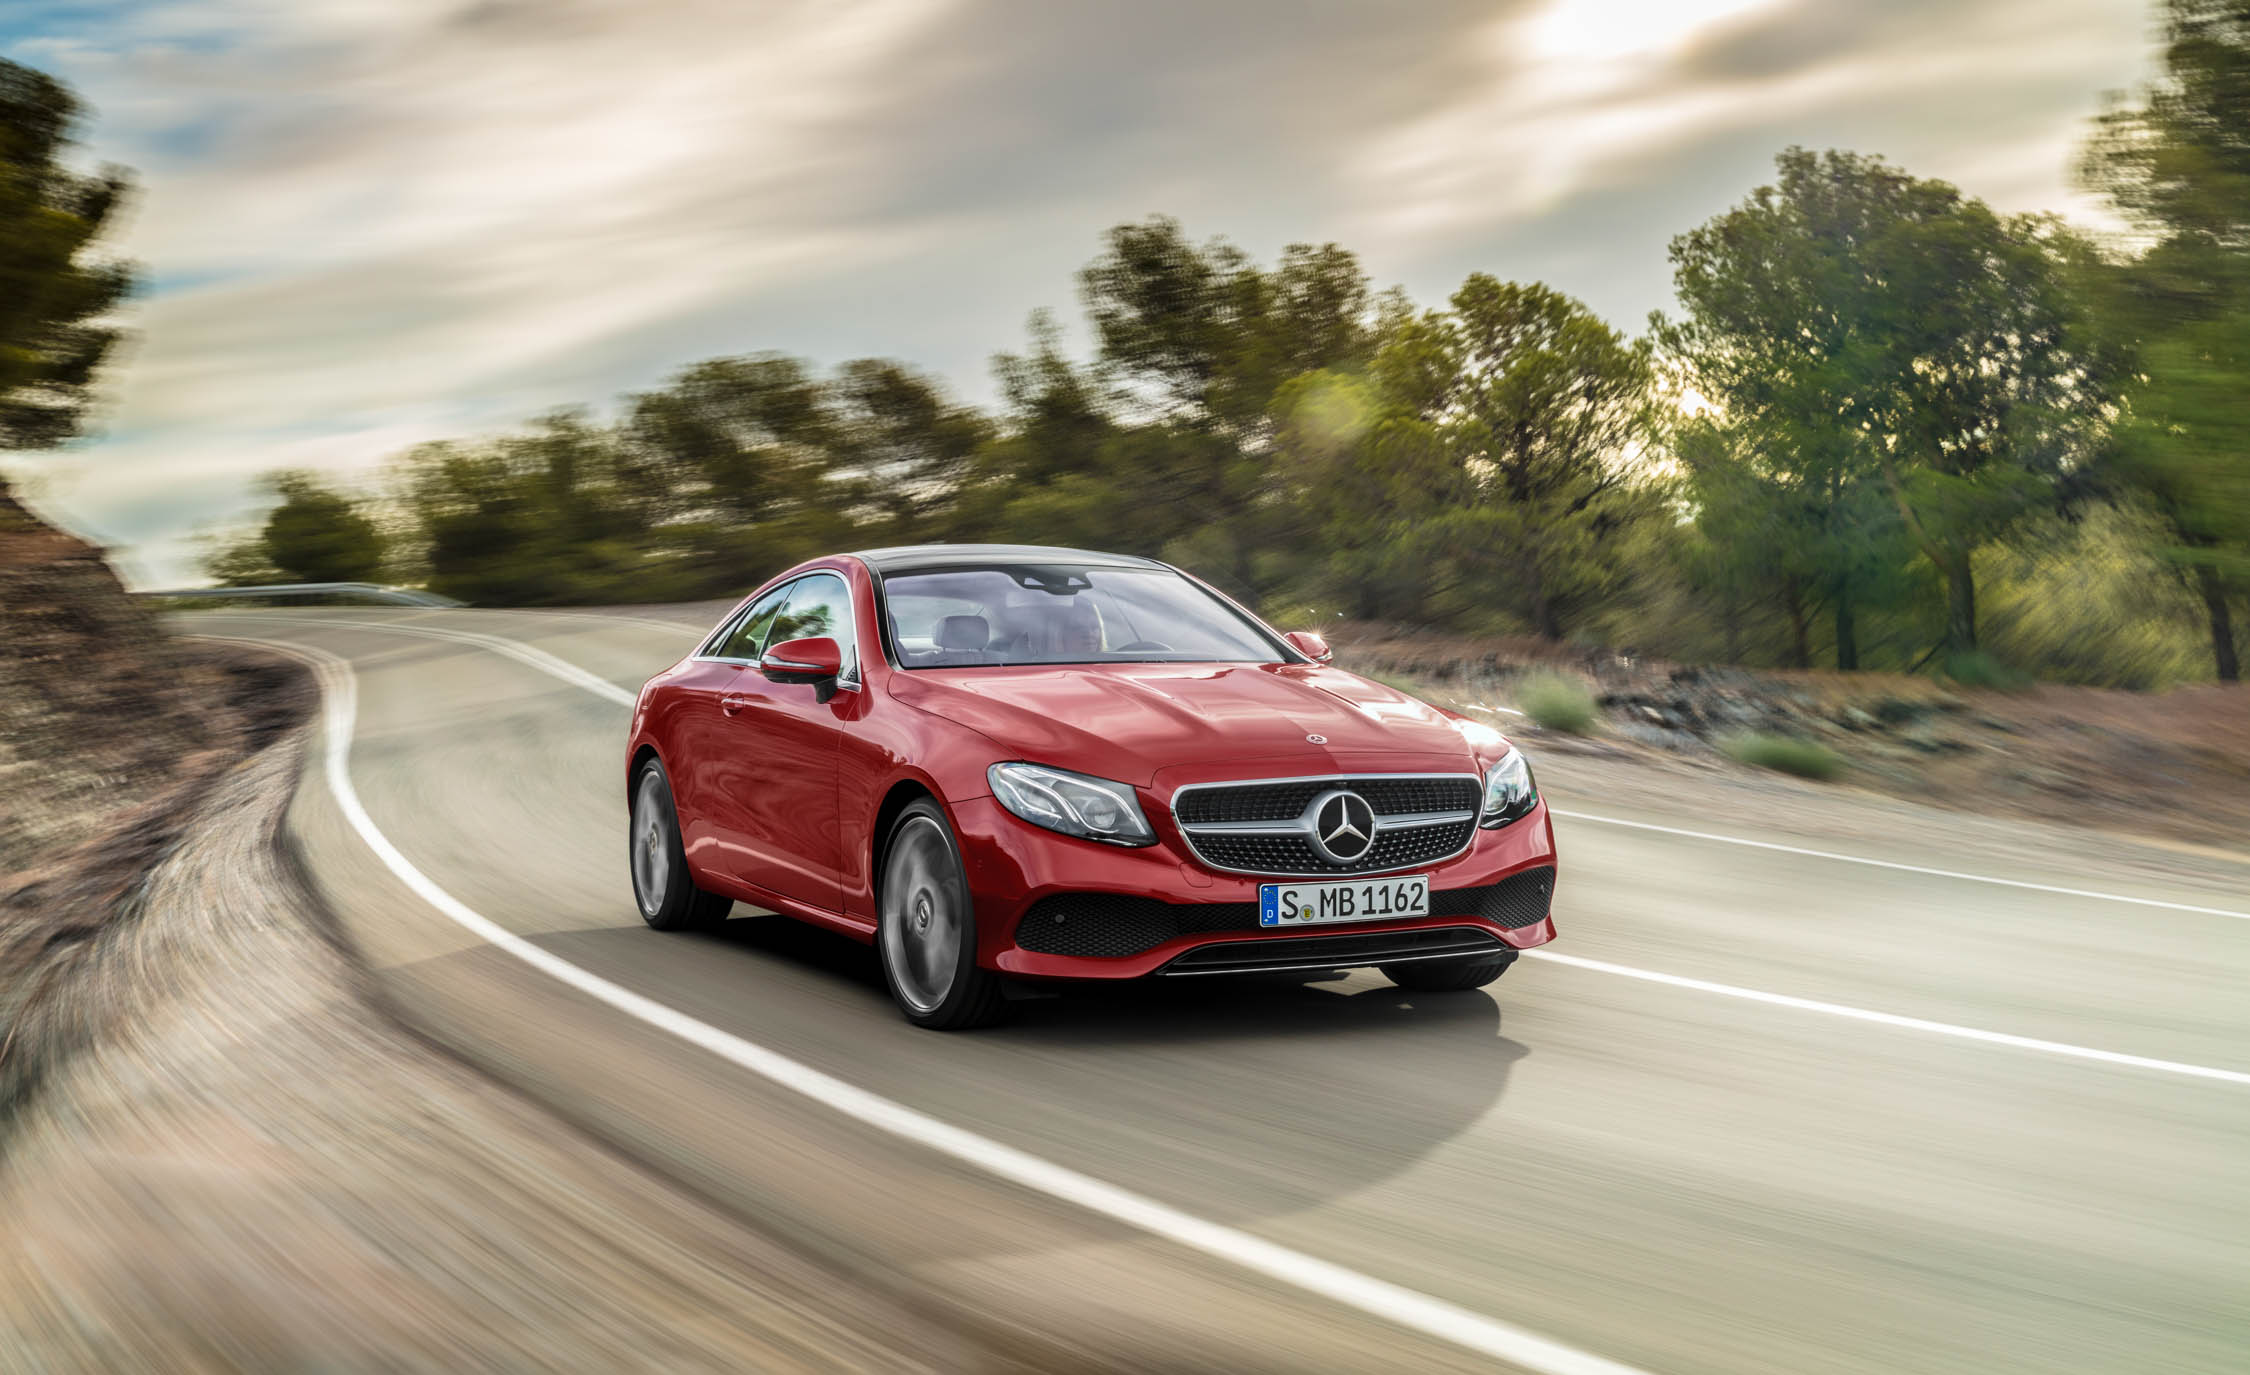 2018 Mercedes Benz E Class Coupe (Photo 21 of 60)